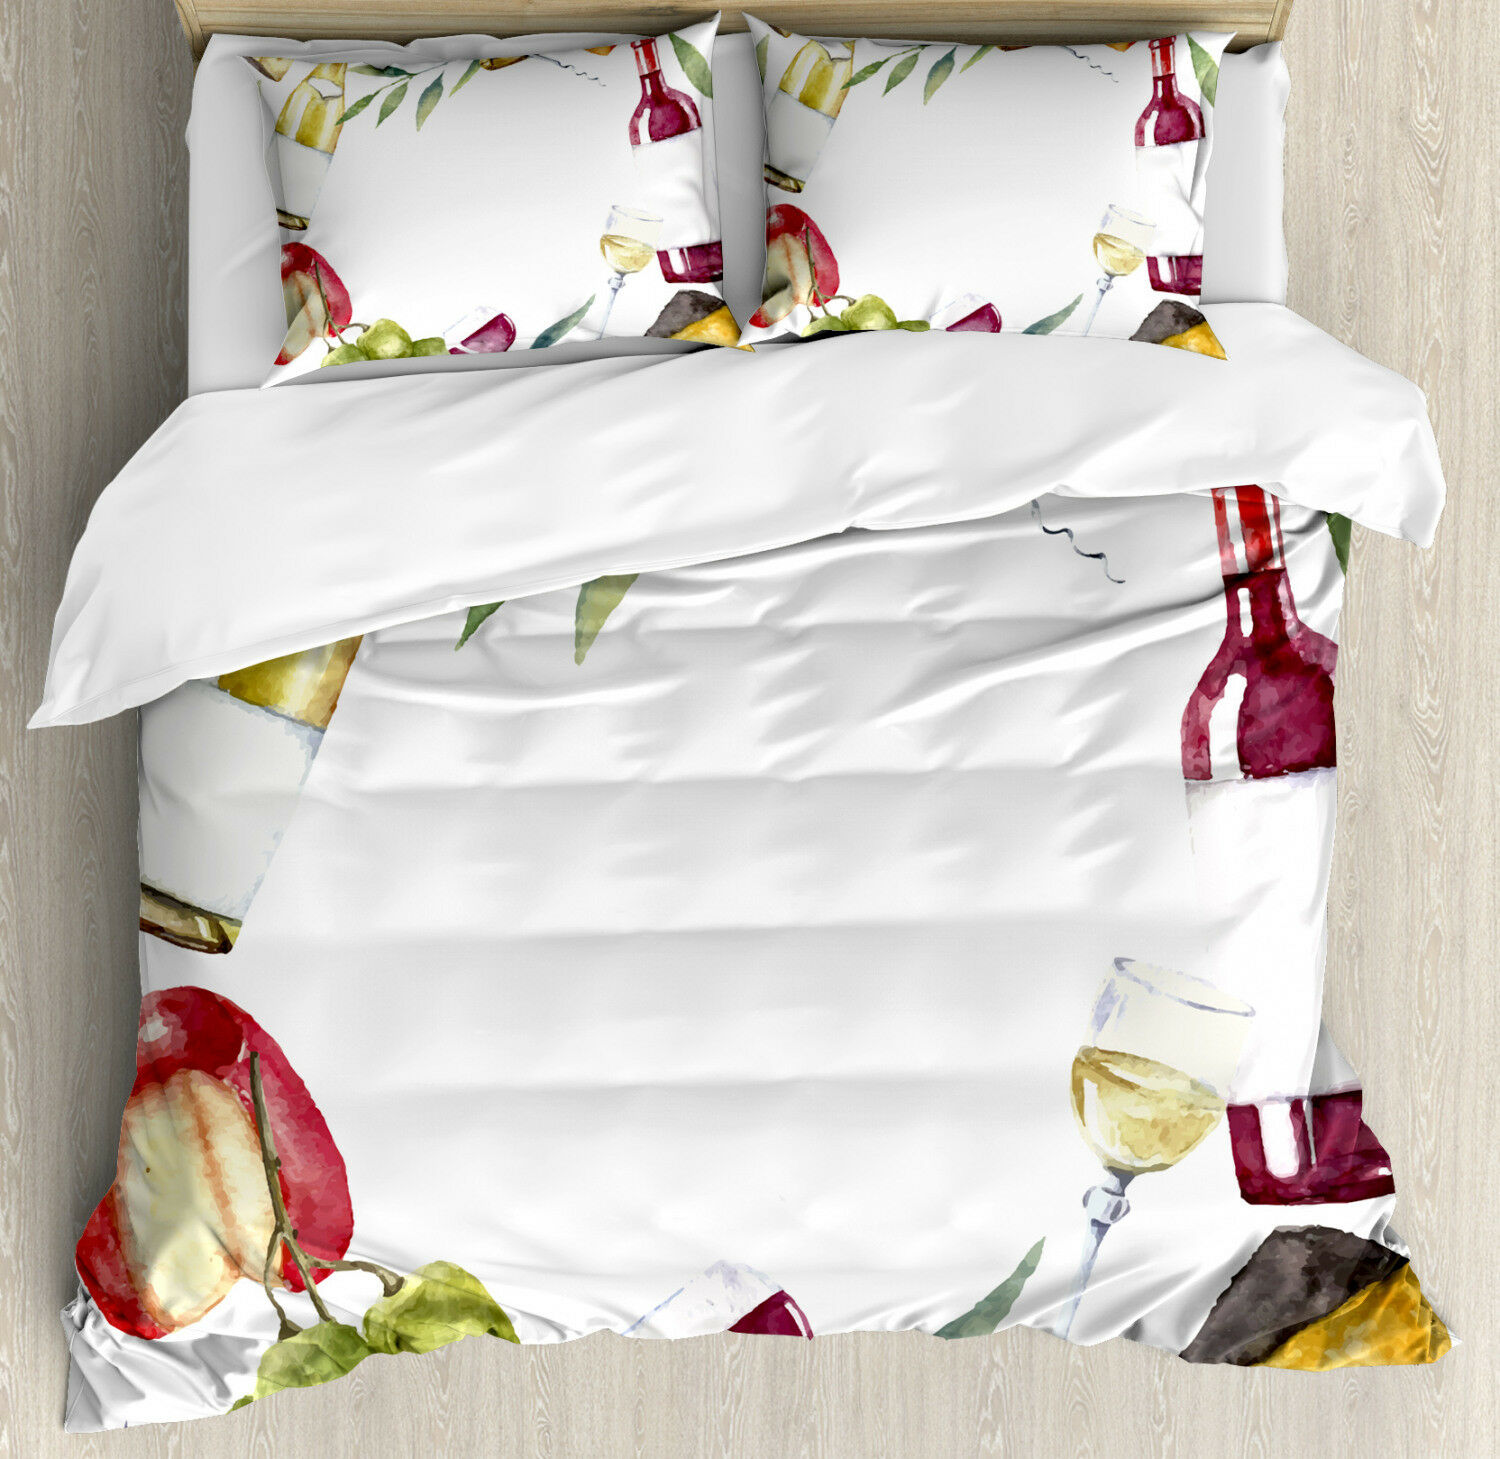 Wine Duvet Cover Set with Pillow Shams Watercolor Food Wine Frame Print